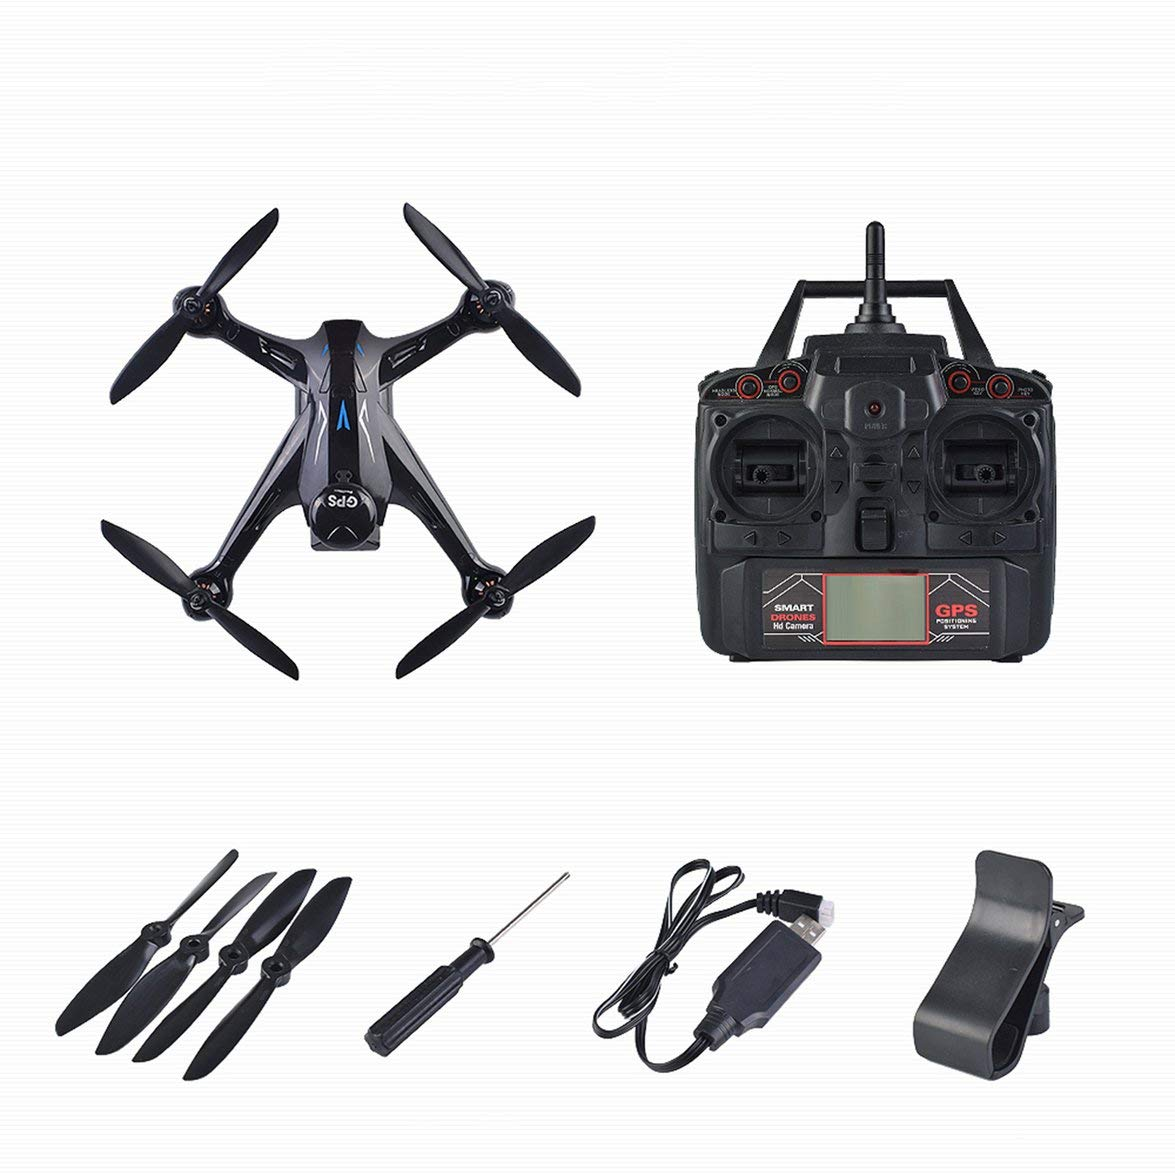 Kongqiabona Professional Drone Ray X198 GPS Drone Four Axis Aircraft with Fixed Height 720P WiFi Camera Quadrocopter RC Drone